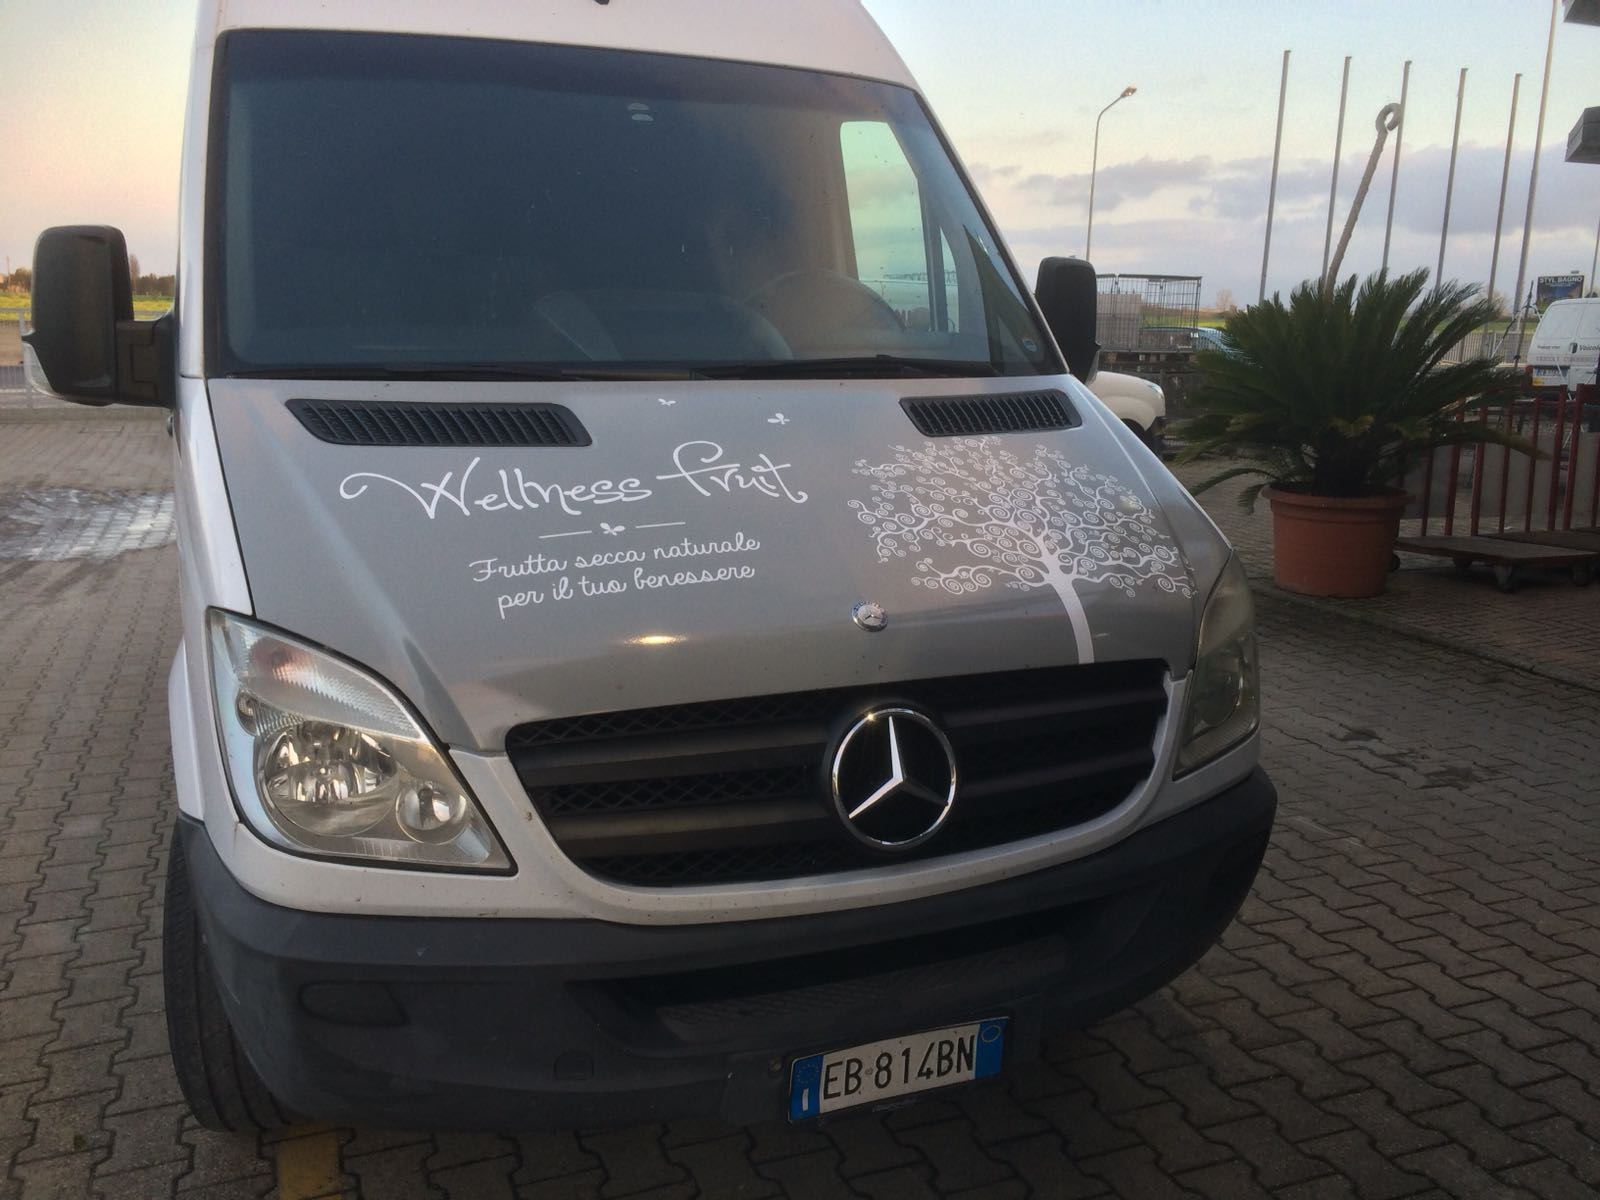 Mercedes-Benz Sprinter - Wellness Fruit